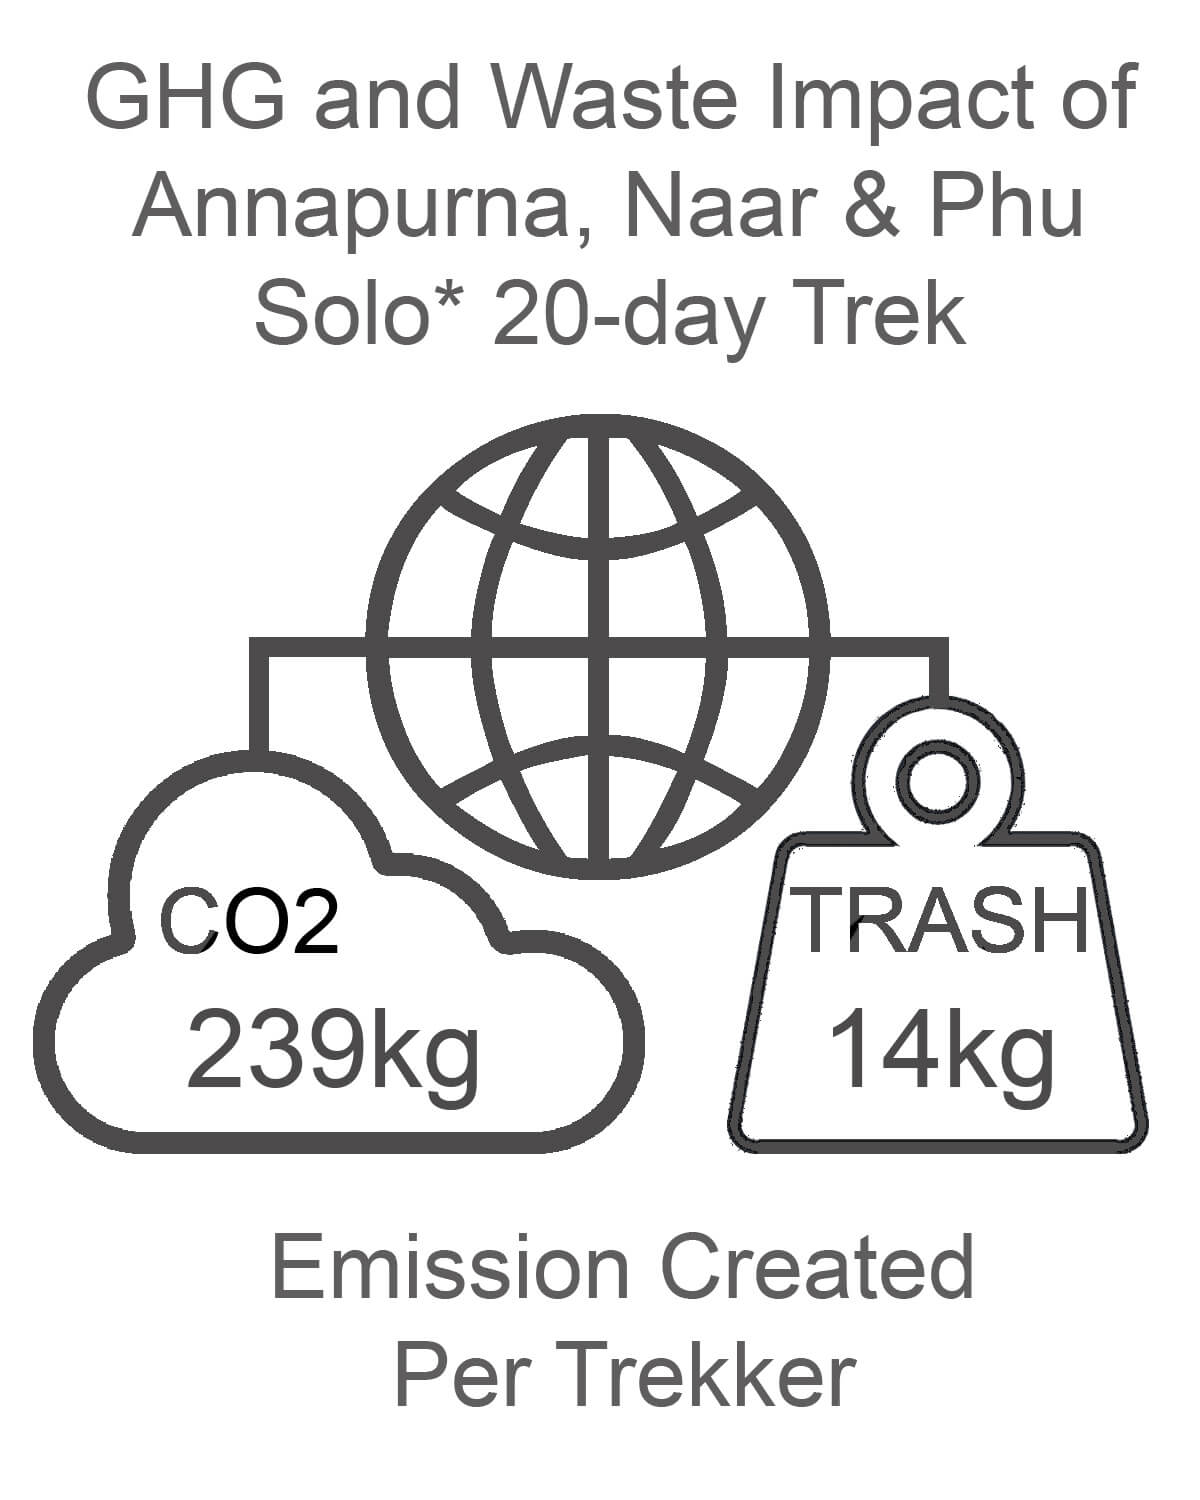 Annapurna Naar and Phu GHG and Waste Impact SOLO